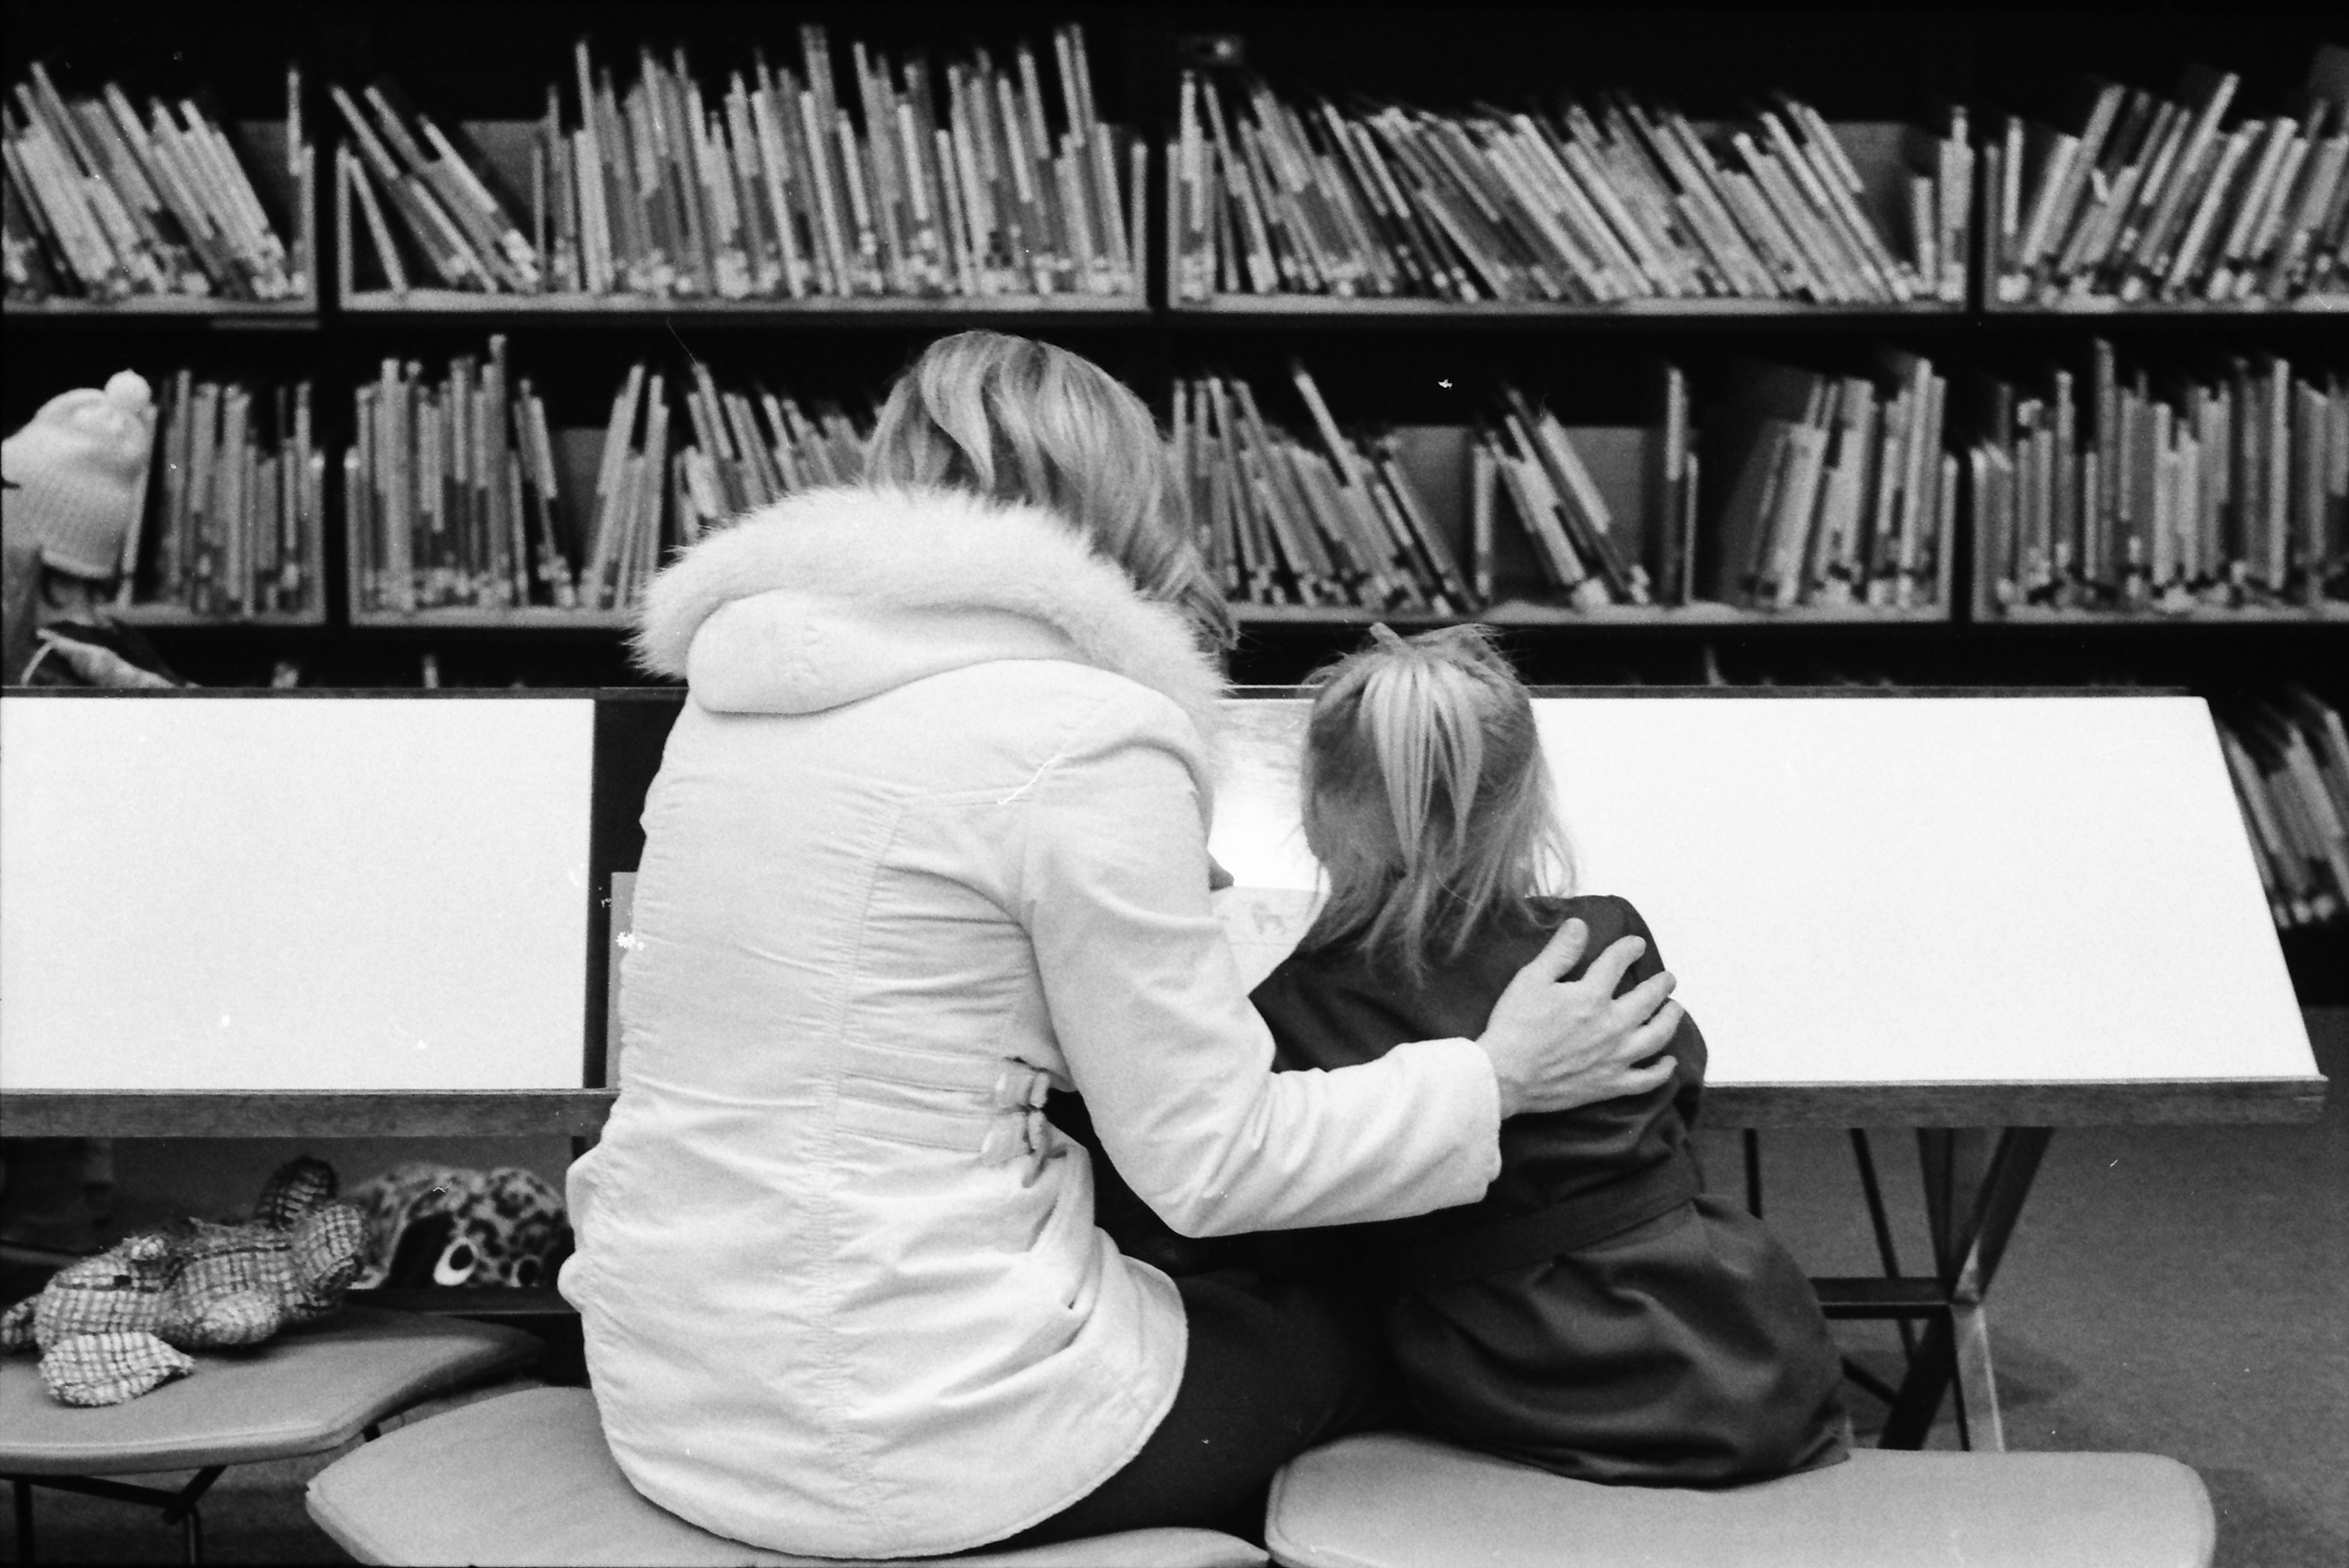 Mother and Daughter Share Quiet Time at the Ann Arbor Public Library, March 1977 image